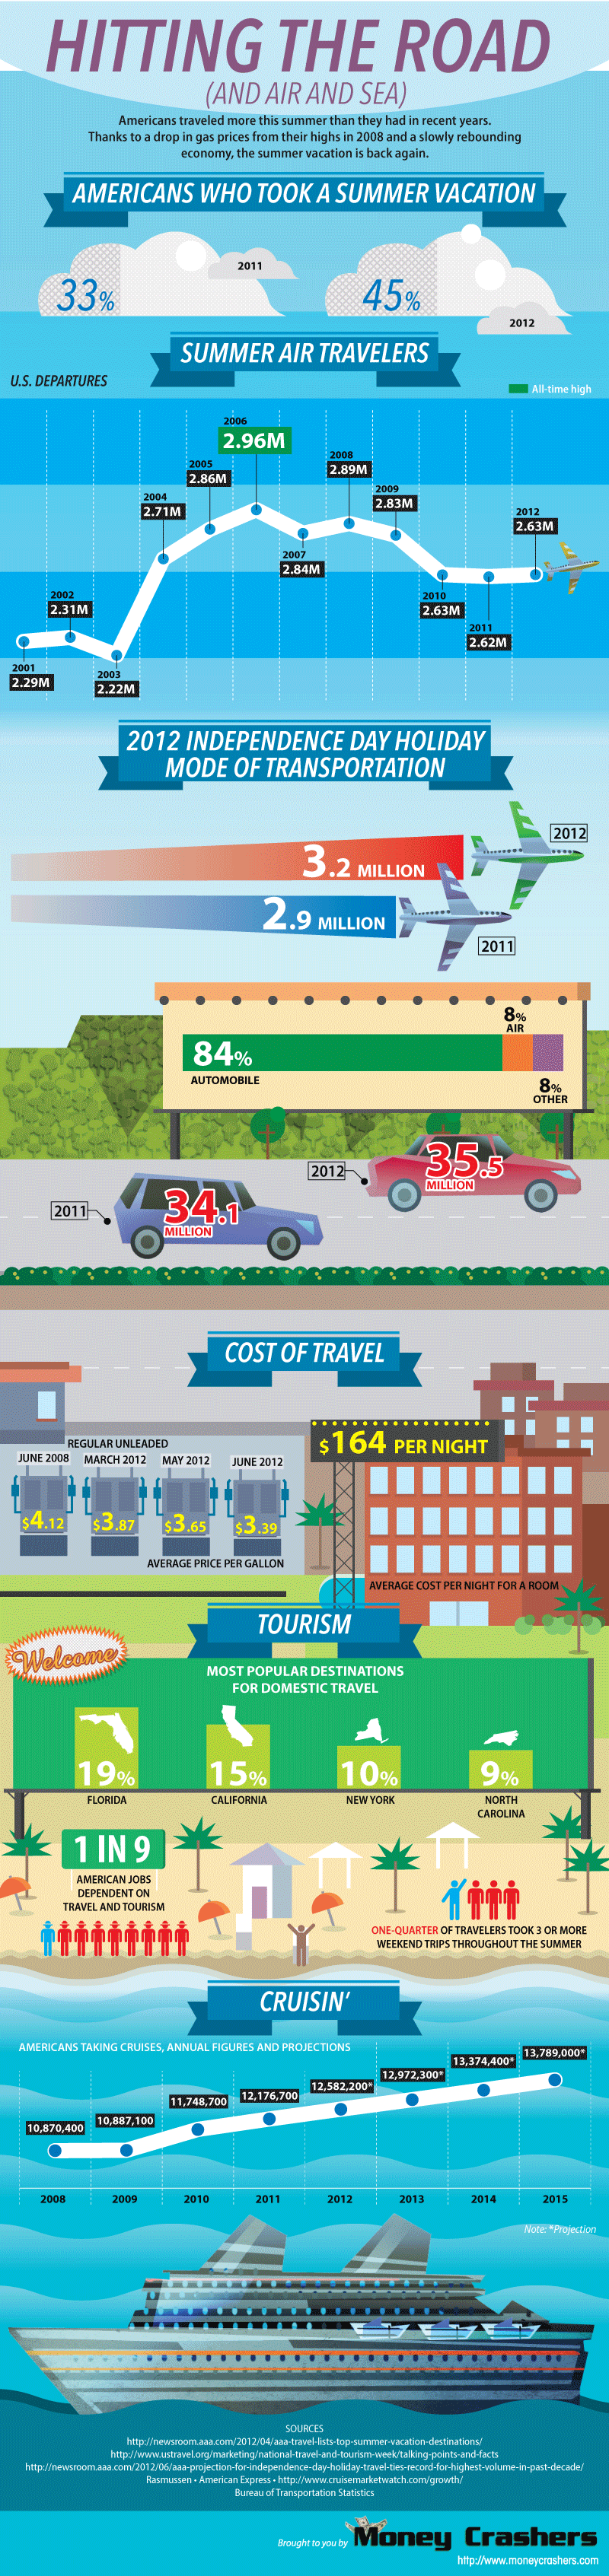 hitting the road summer travel infographic